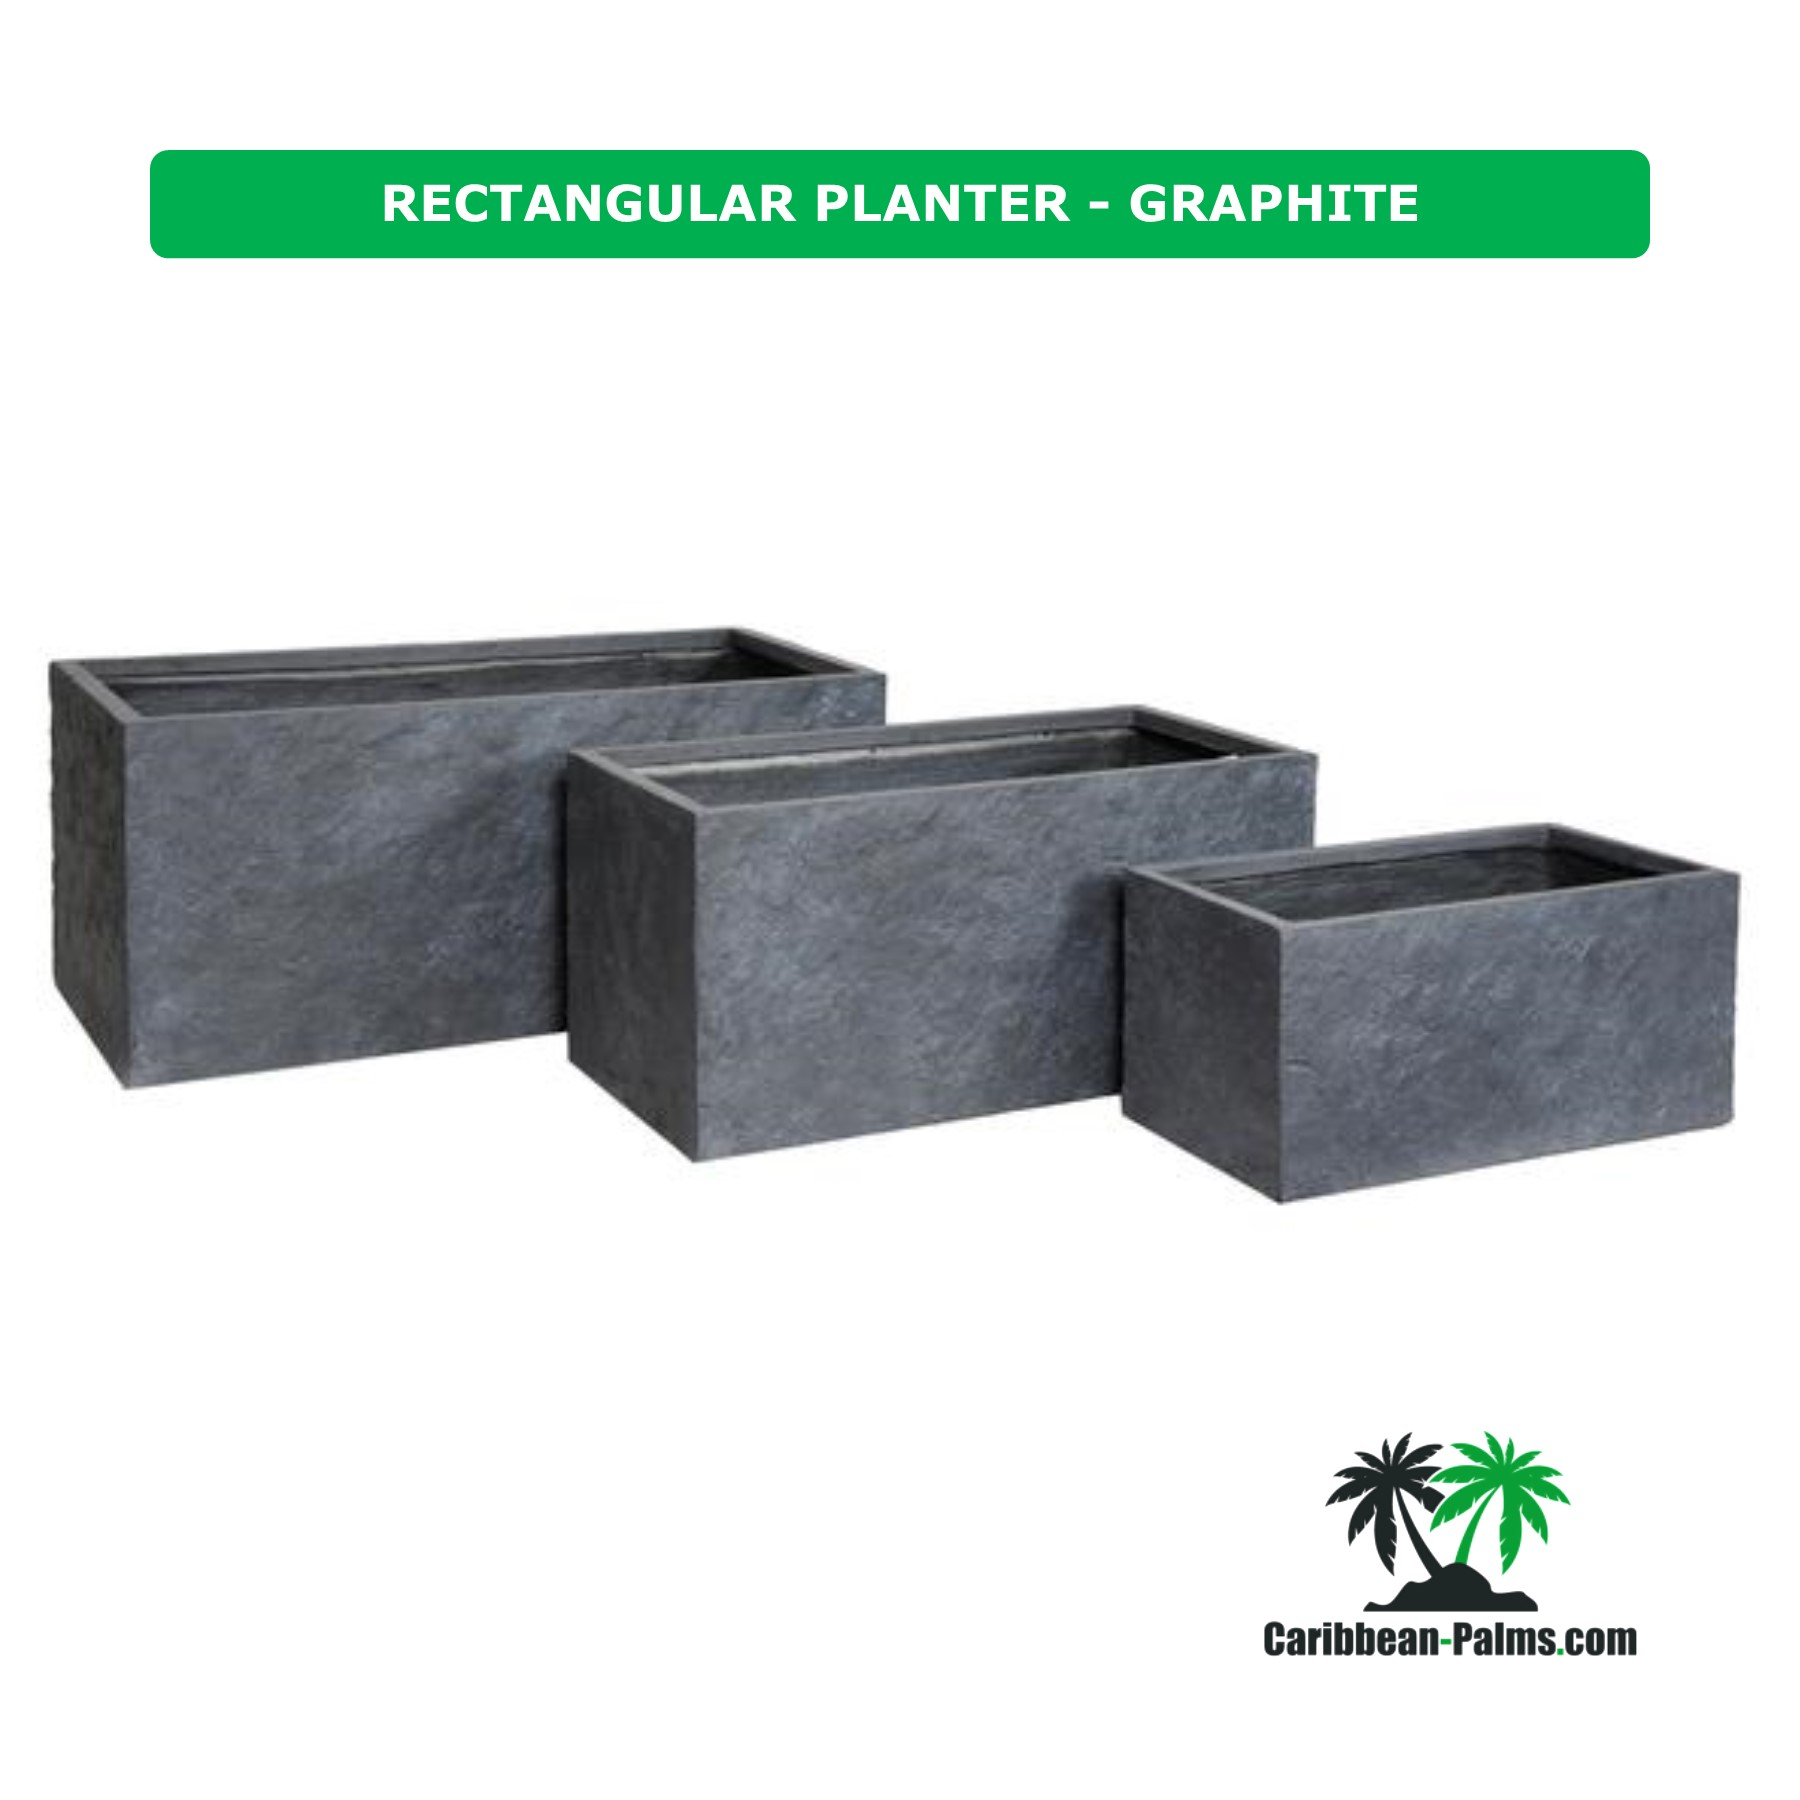 RECTANGULAR PLANTER GRAPHITE